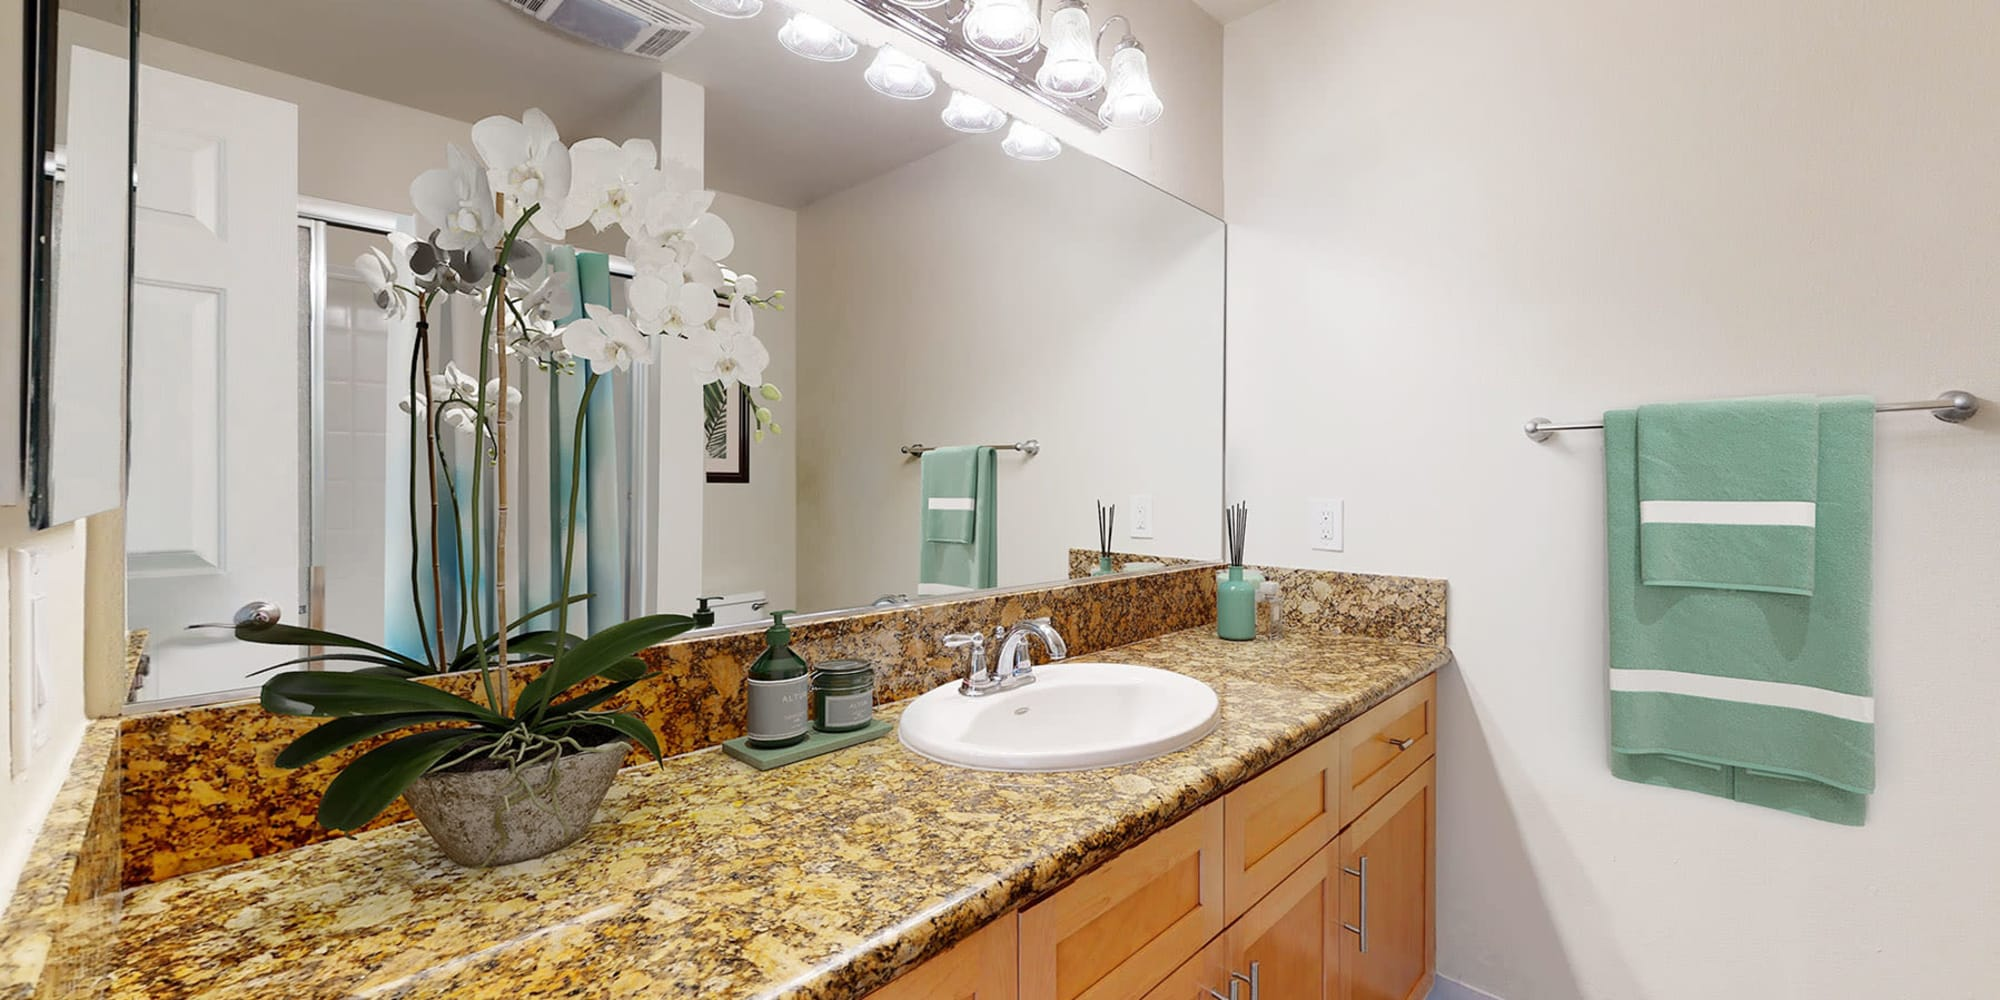 Bathroom with granite countertops in a spacious apartment home at The Tides at Marina Harbor in Marina del Rey, California